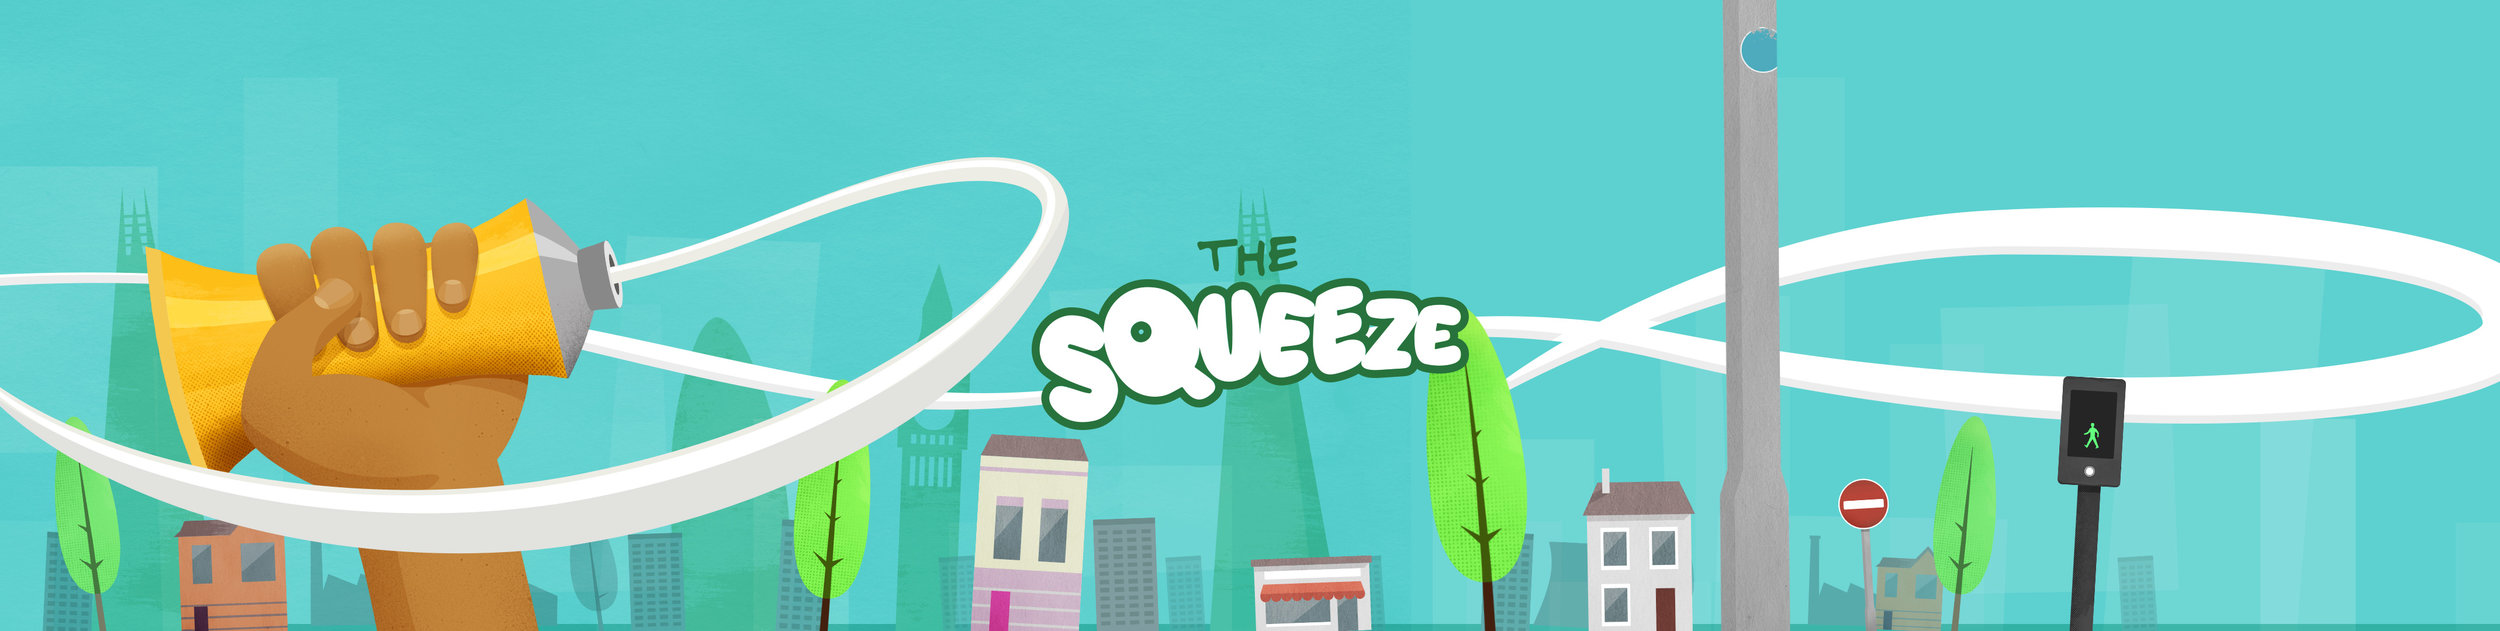 Squeeze-Styleframe-02e.jpg